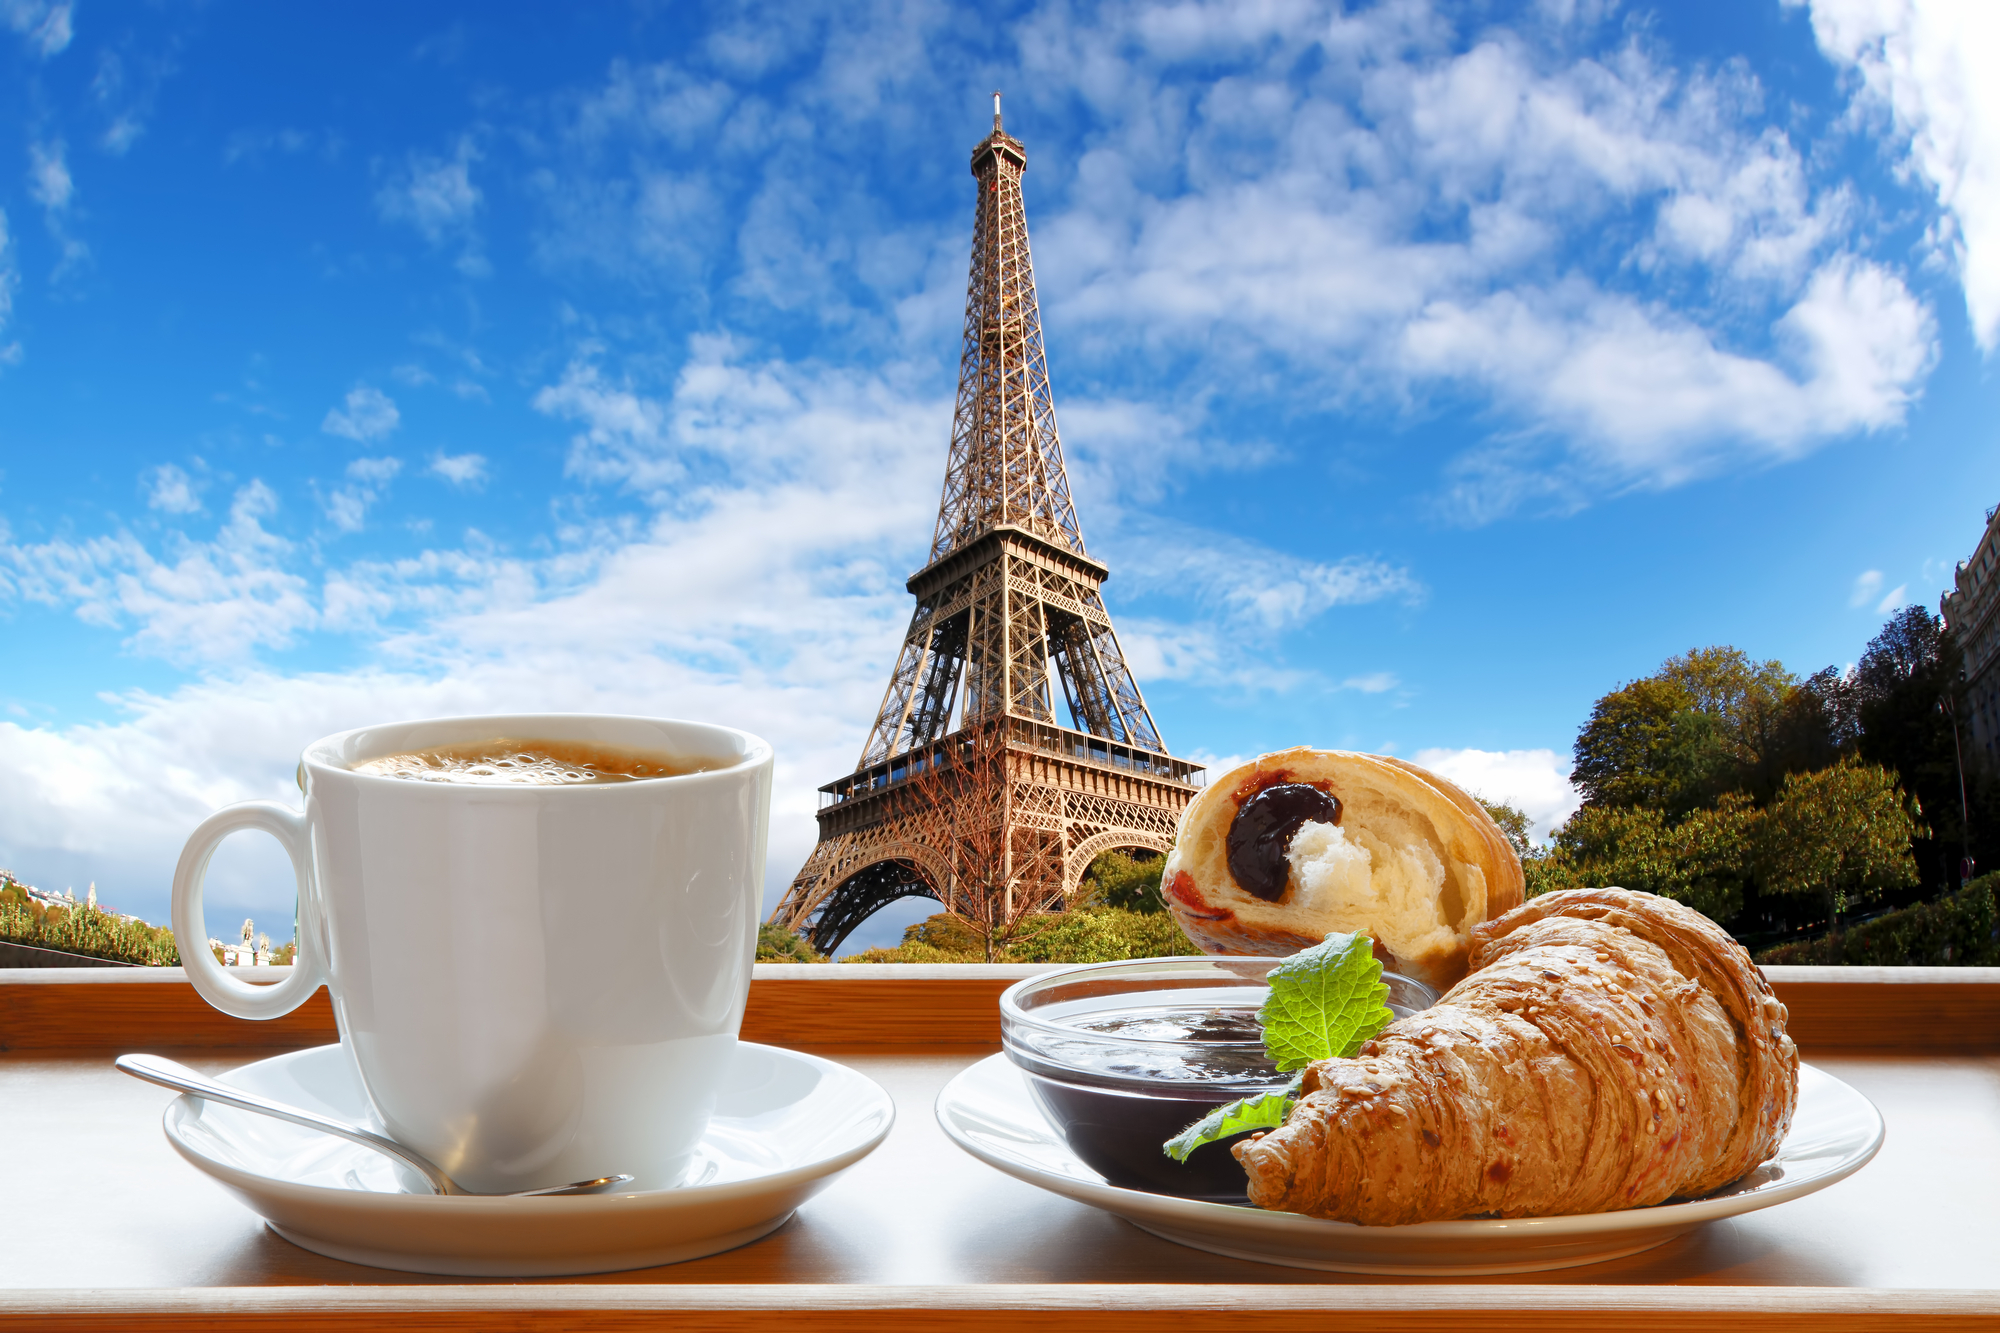 French food